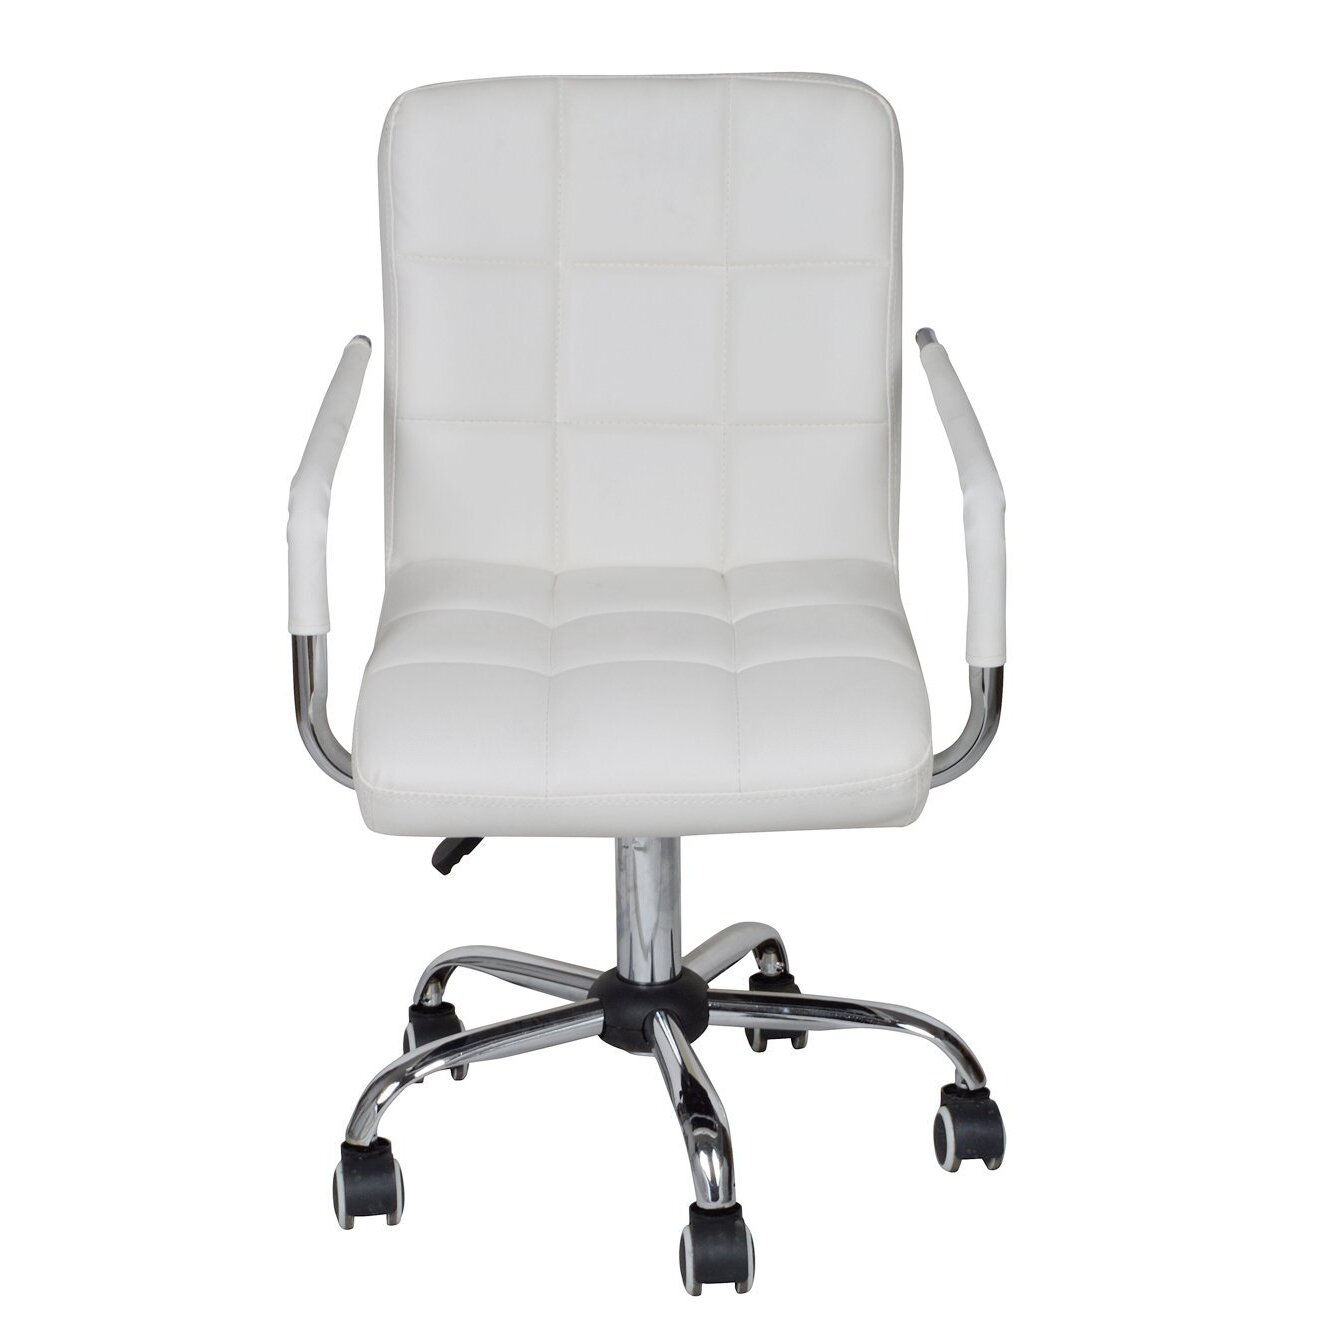 adjustable rolling office chair reviews joss main. Black Bedroom Furniture Sets. Home Design Ideas